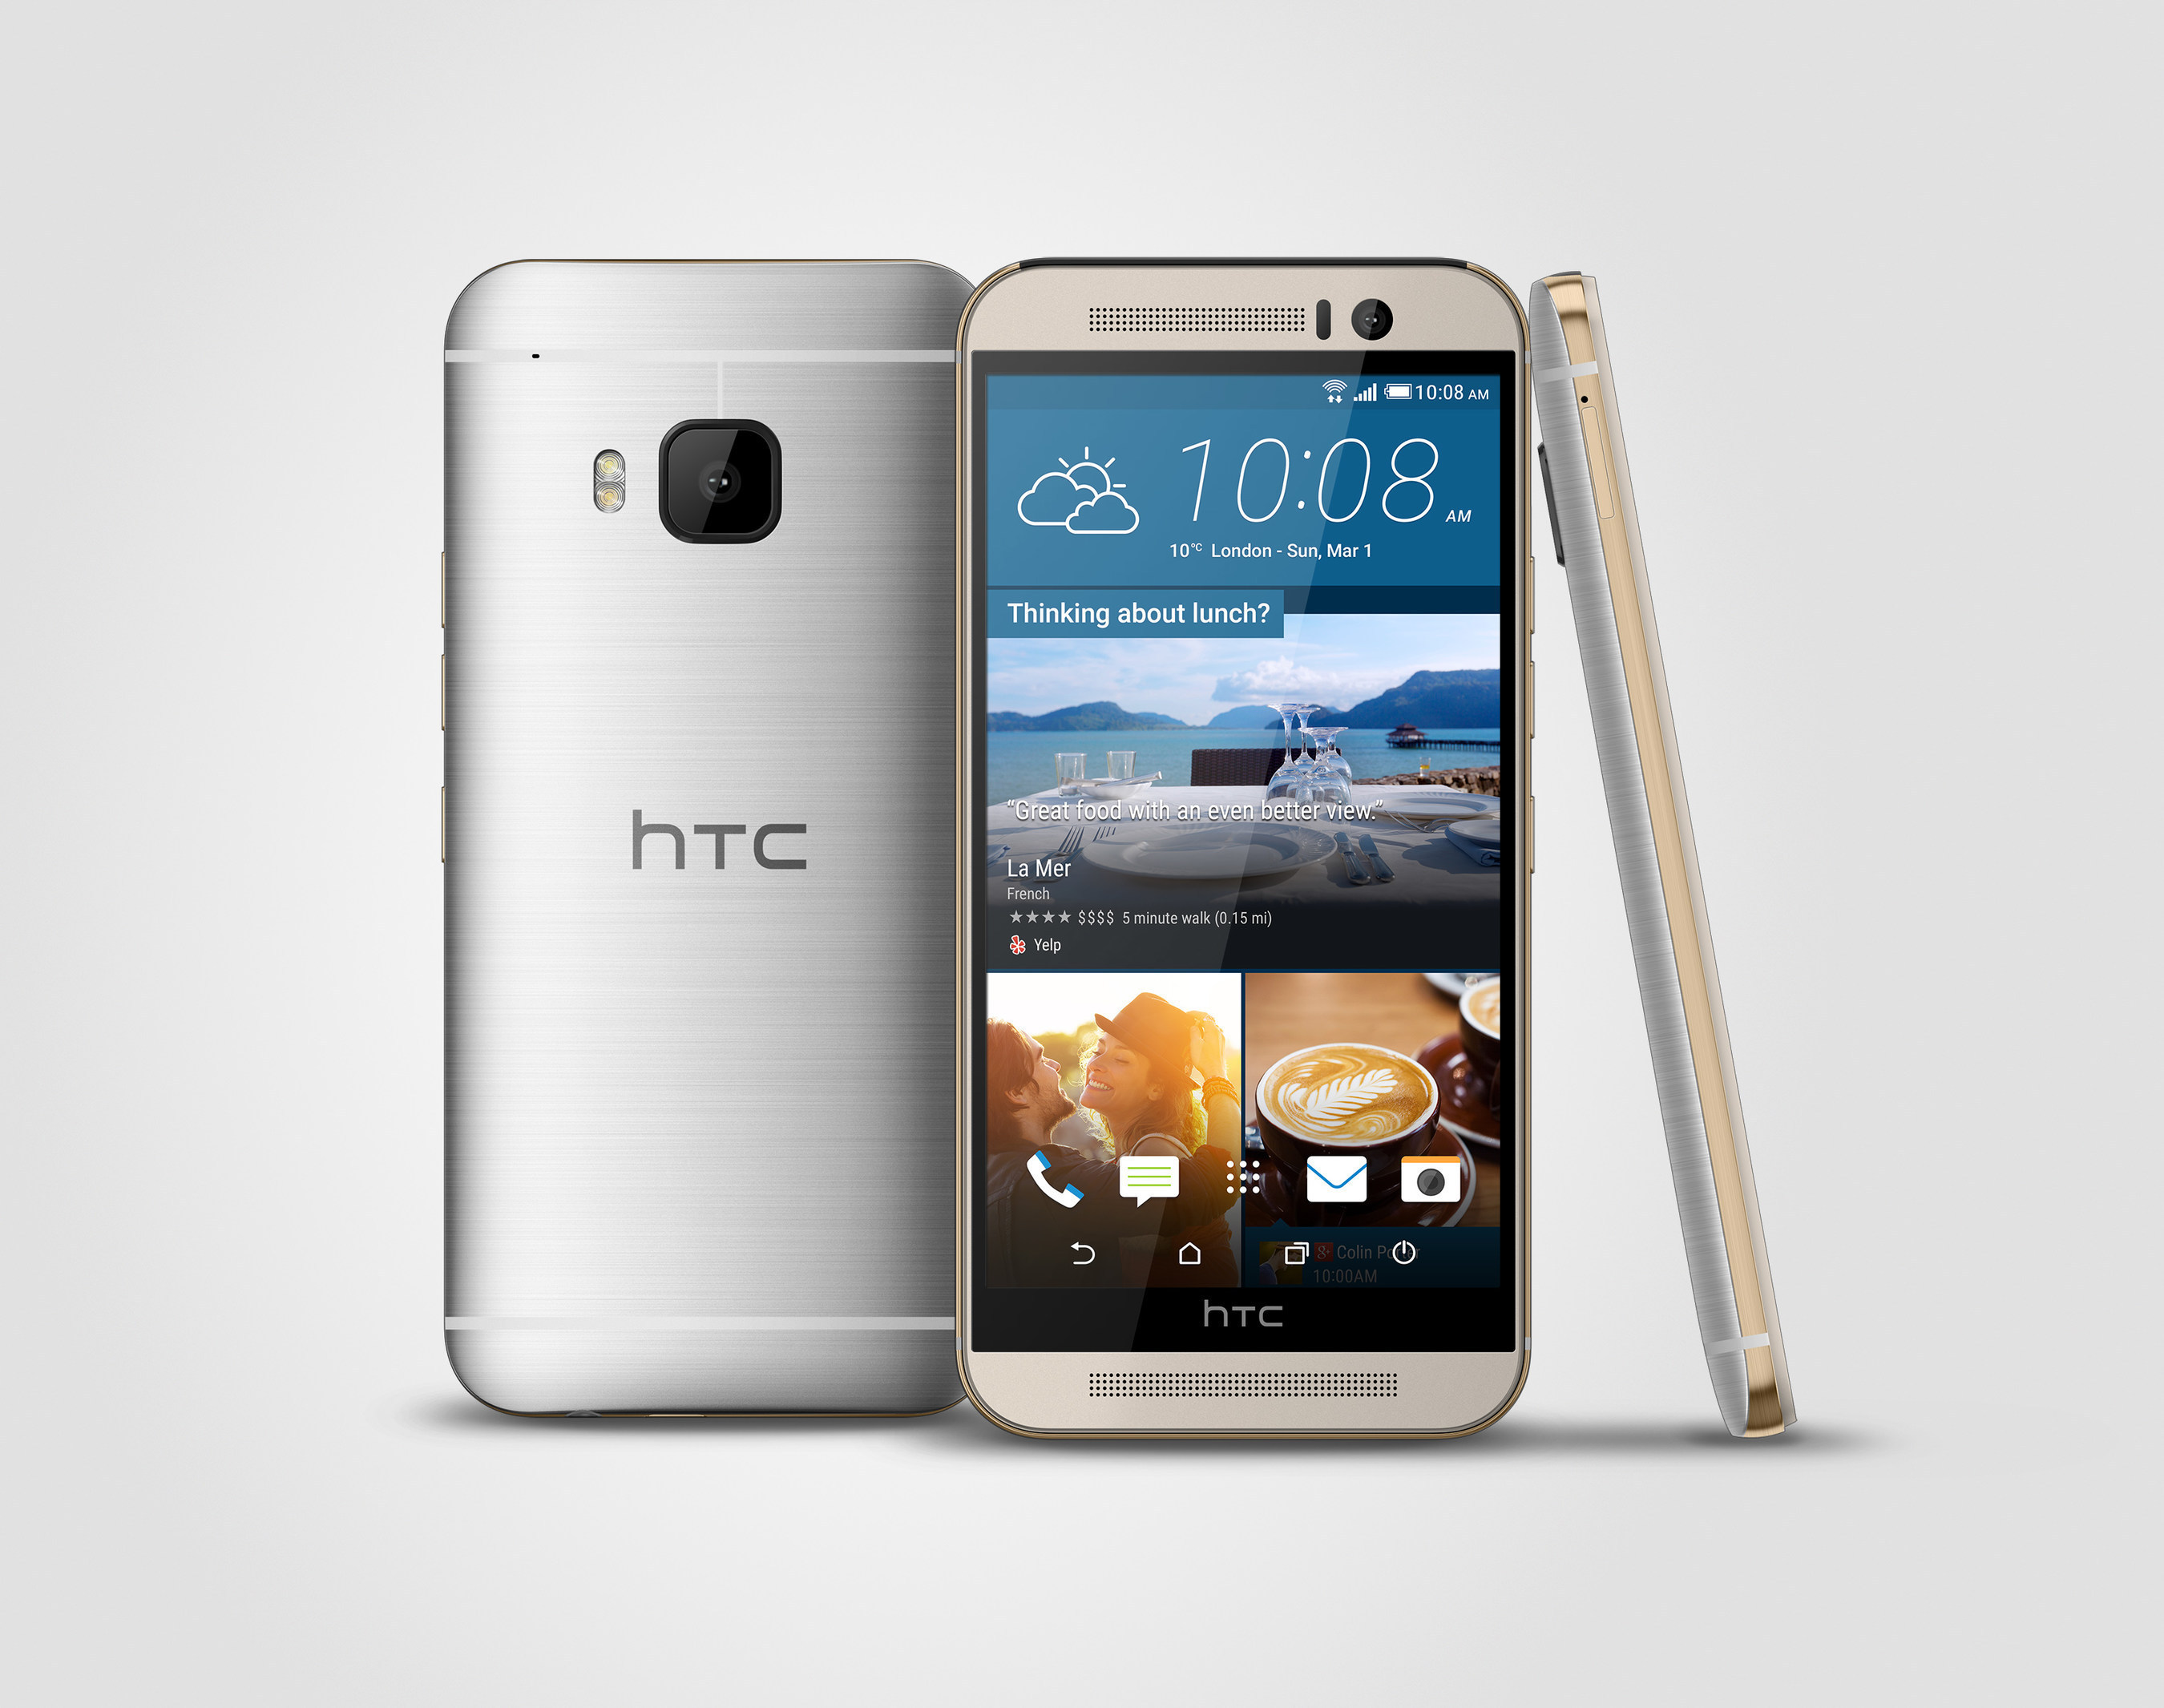 The new HTC One has a stunning dual-finish metal body, a 20MP camera, intuitive apps that anticipate your needs, front-facing BoomSound(TM) speakers with Dolby Audio and a 5-inch full HD screen. The HTC One M9 made its debut at Mobile World Congress on March 1, 2015 in Barcelona, along with other HTC innovative announcements.